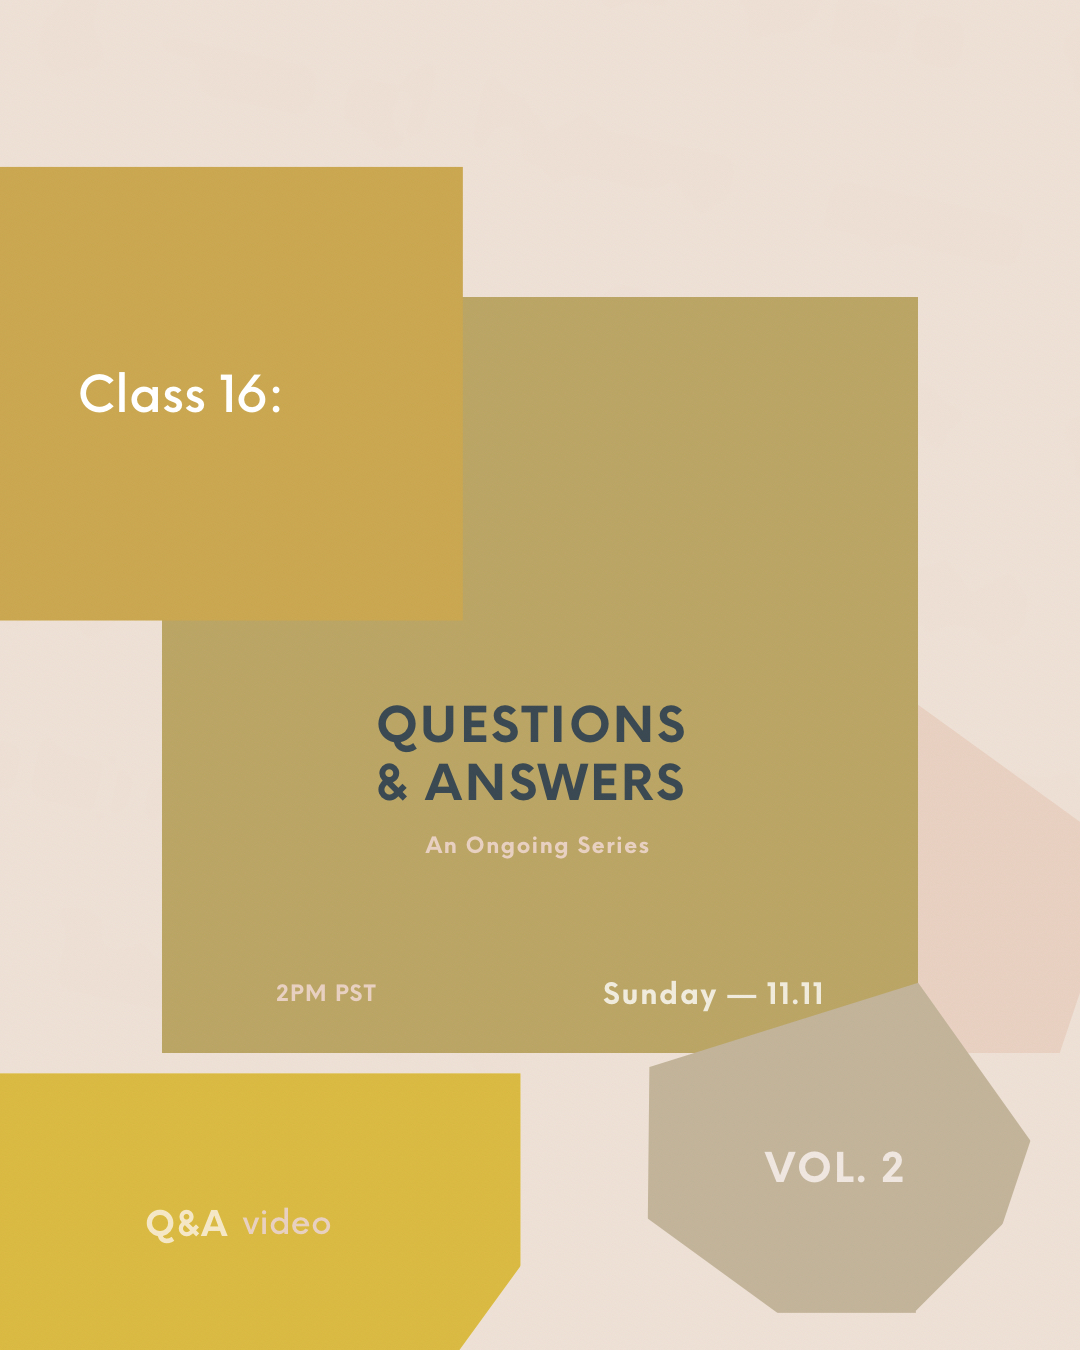 Subject 16: Q&A Vol. 2 - This week's video class is the second in our Q&A series. So many great and essential questions come through on the regular and this Q&A will cover some of them, including: